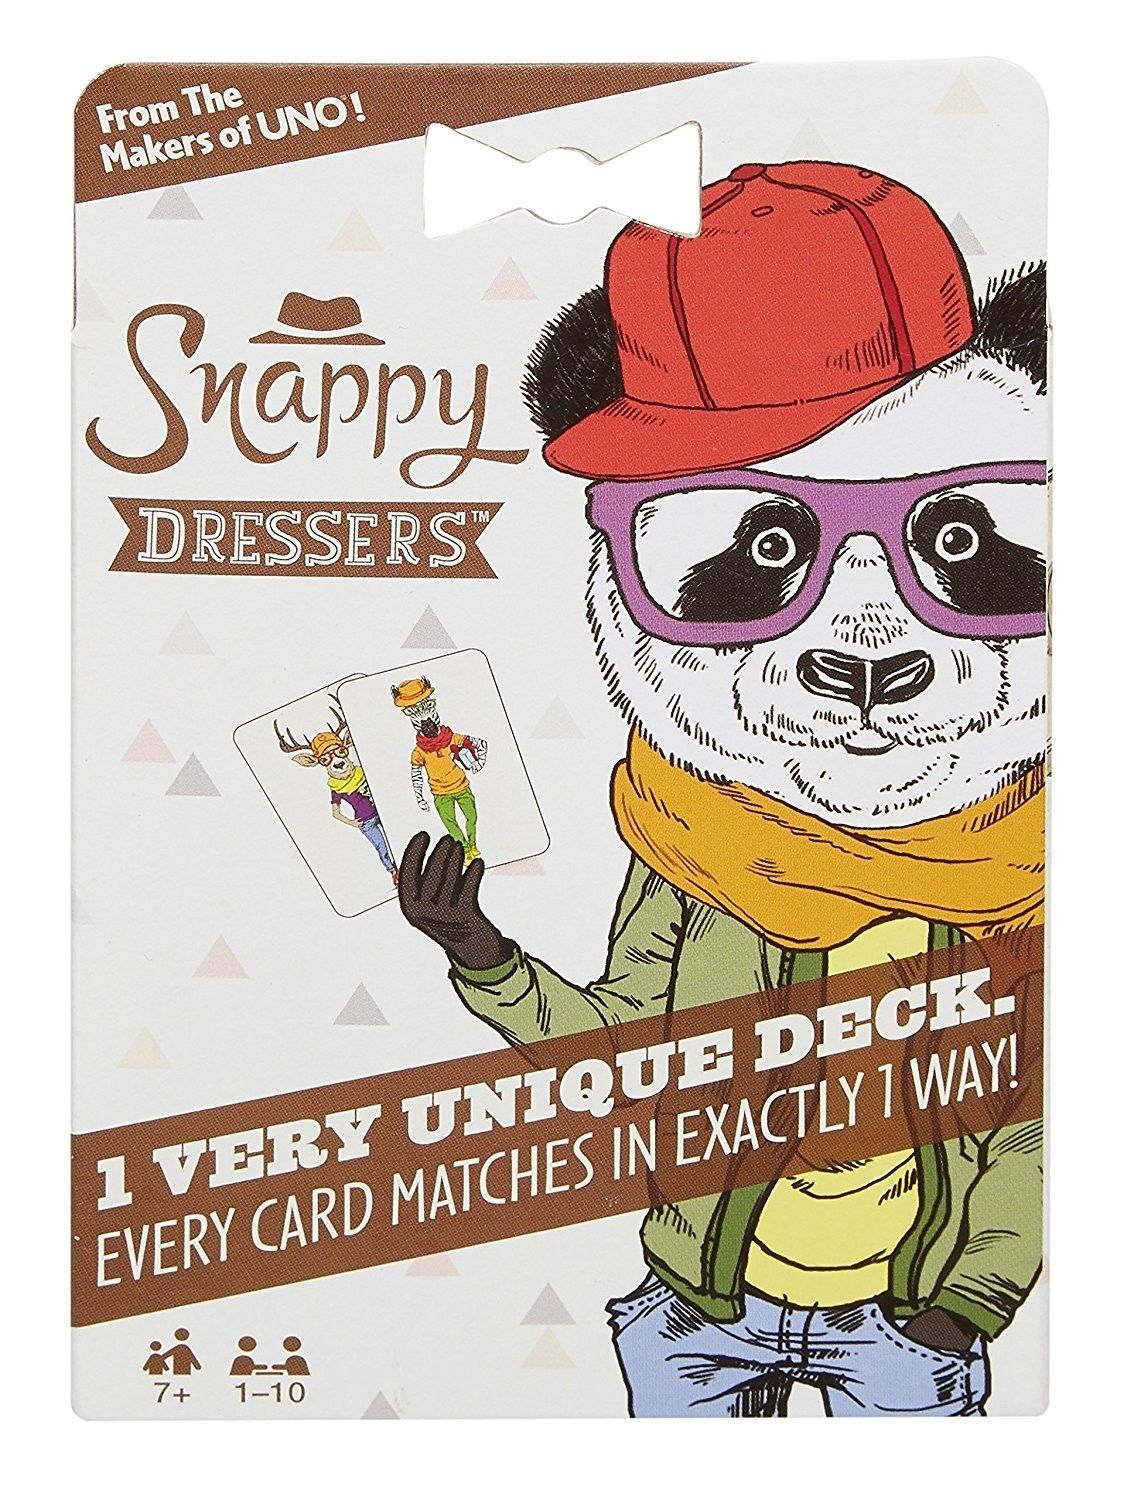 Snappy Dressers Card Game- From the makers of UNO!- FREE SHIPPING!!!